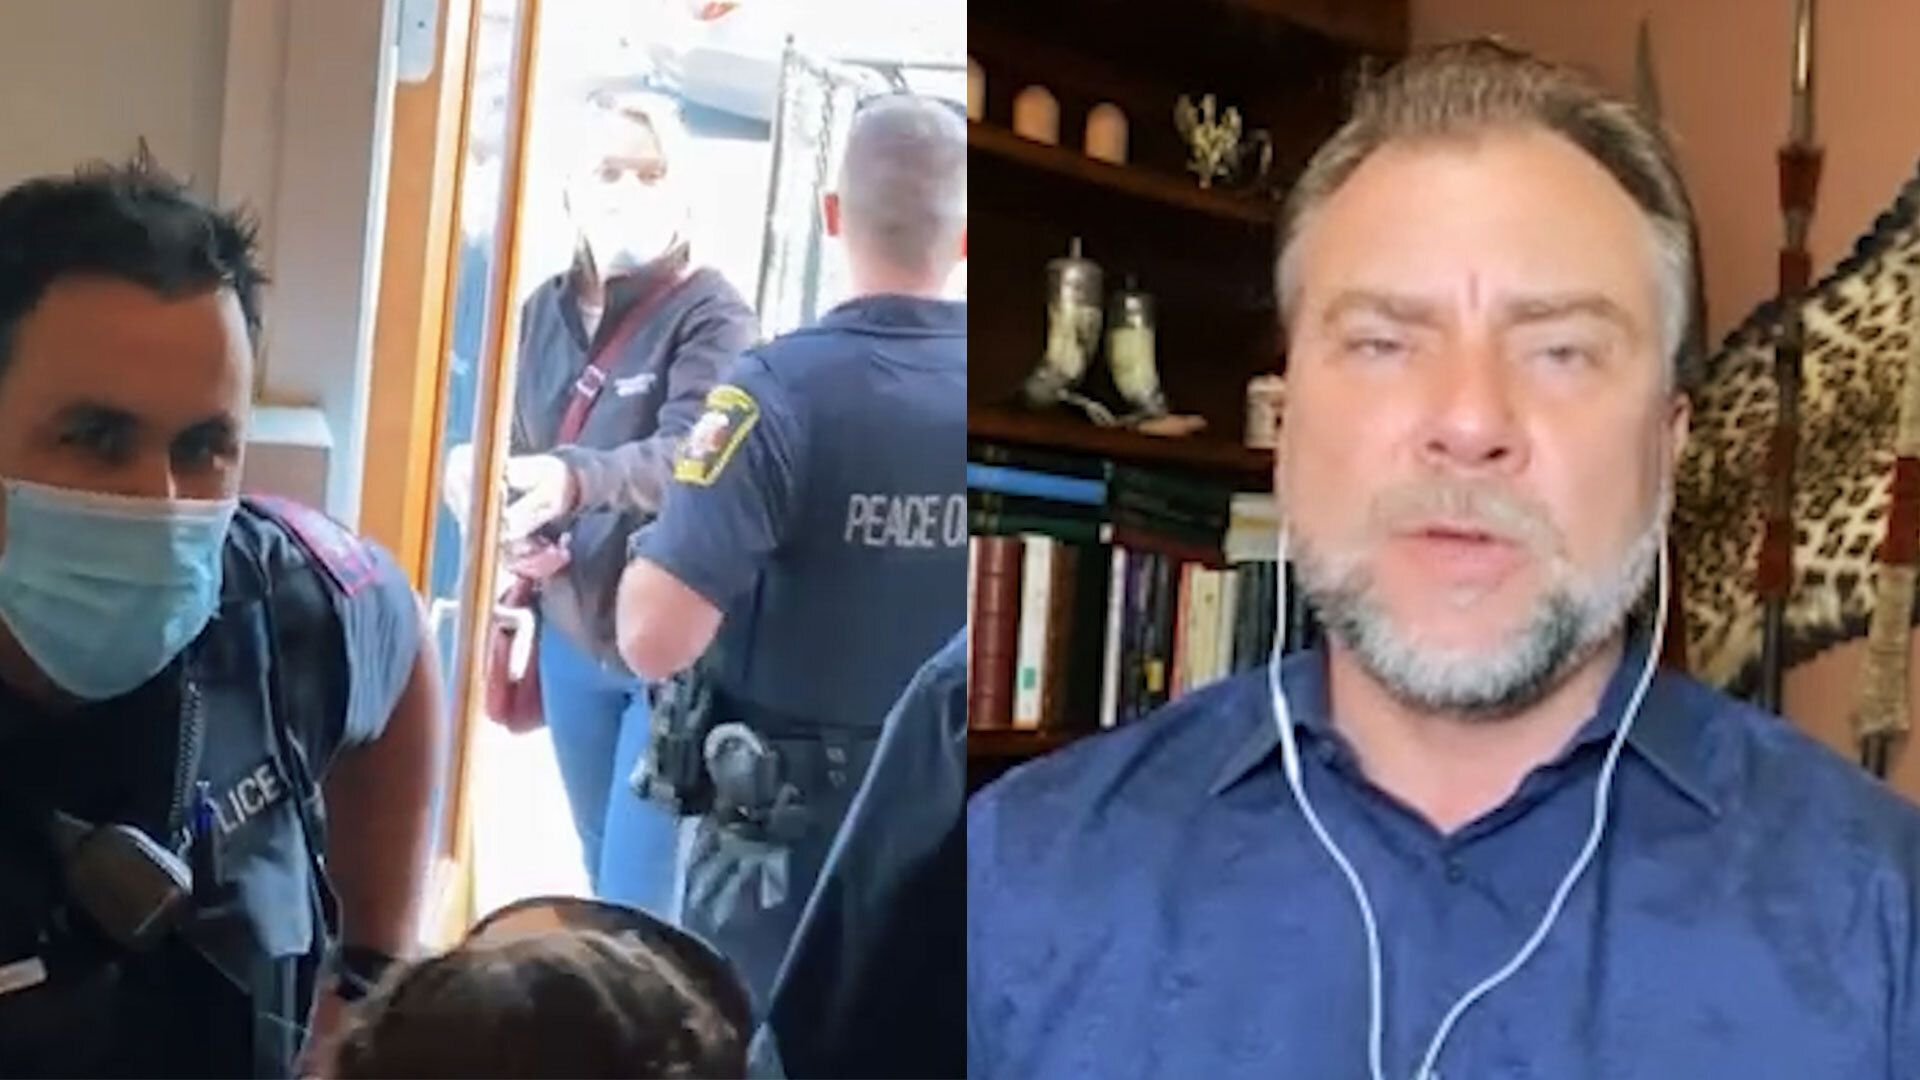 WATCH: Pastor speaks out after confrontation with Calgary Police